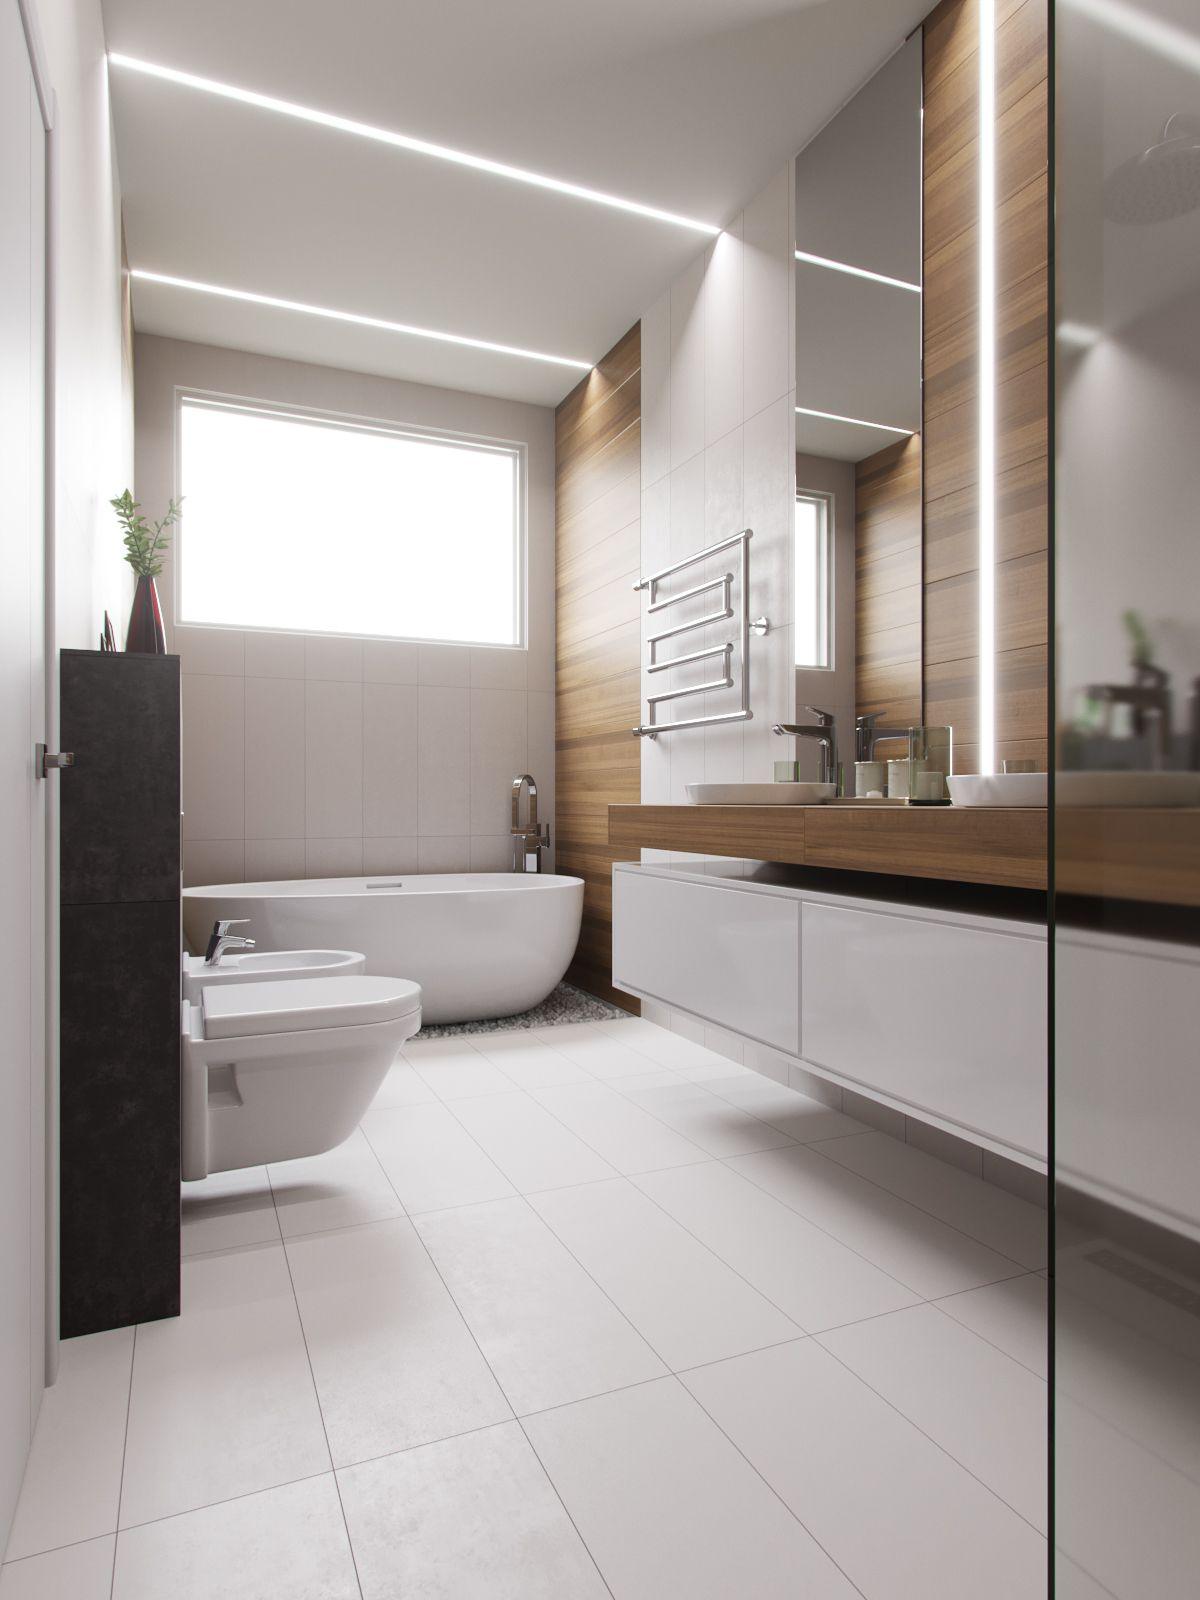 Bathroom 10 Sq M On Behance Bathroom Design Luxury Best